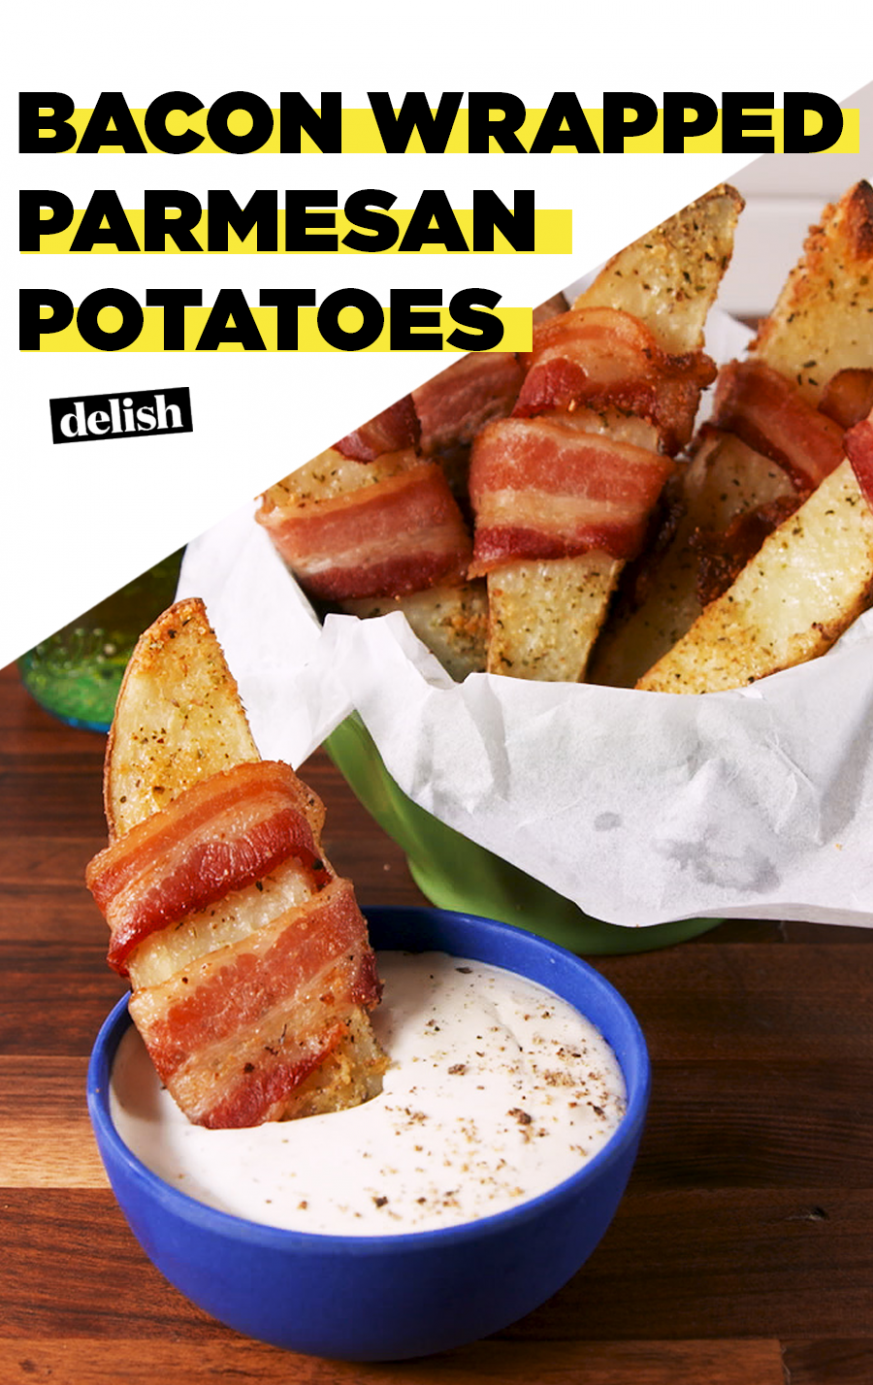 Bacon Wrapped Parmesan Potatoes - Dinner Recipes With Bacon